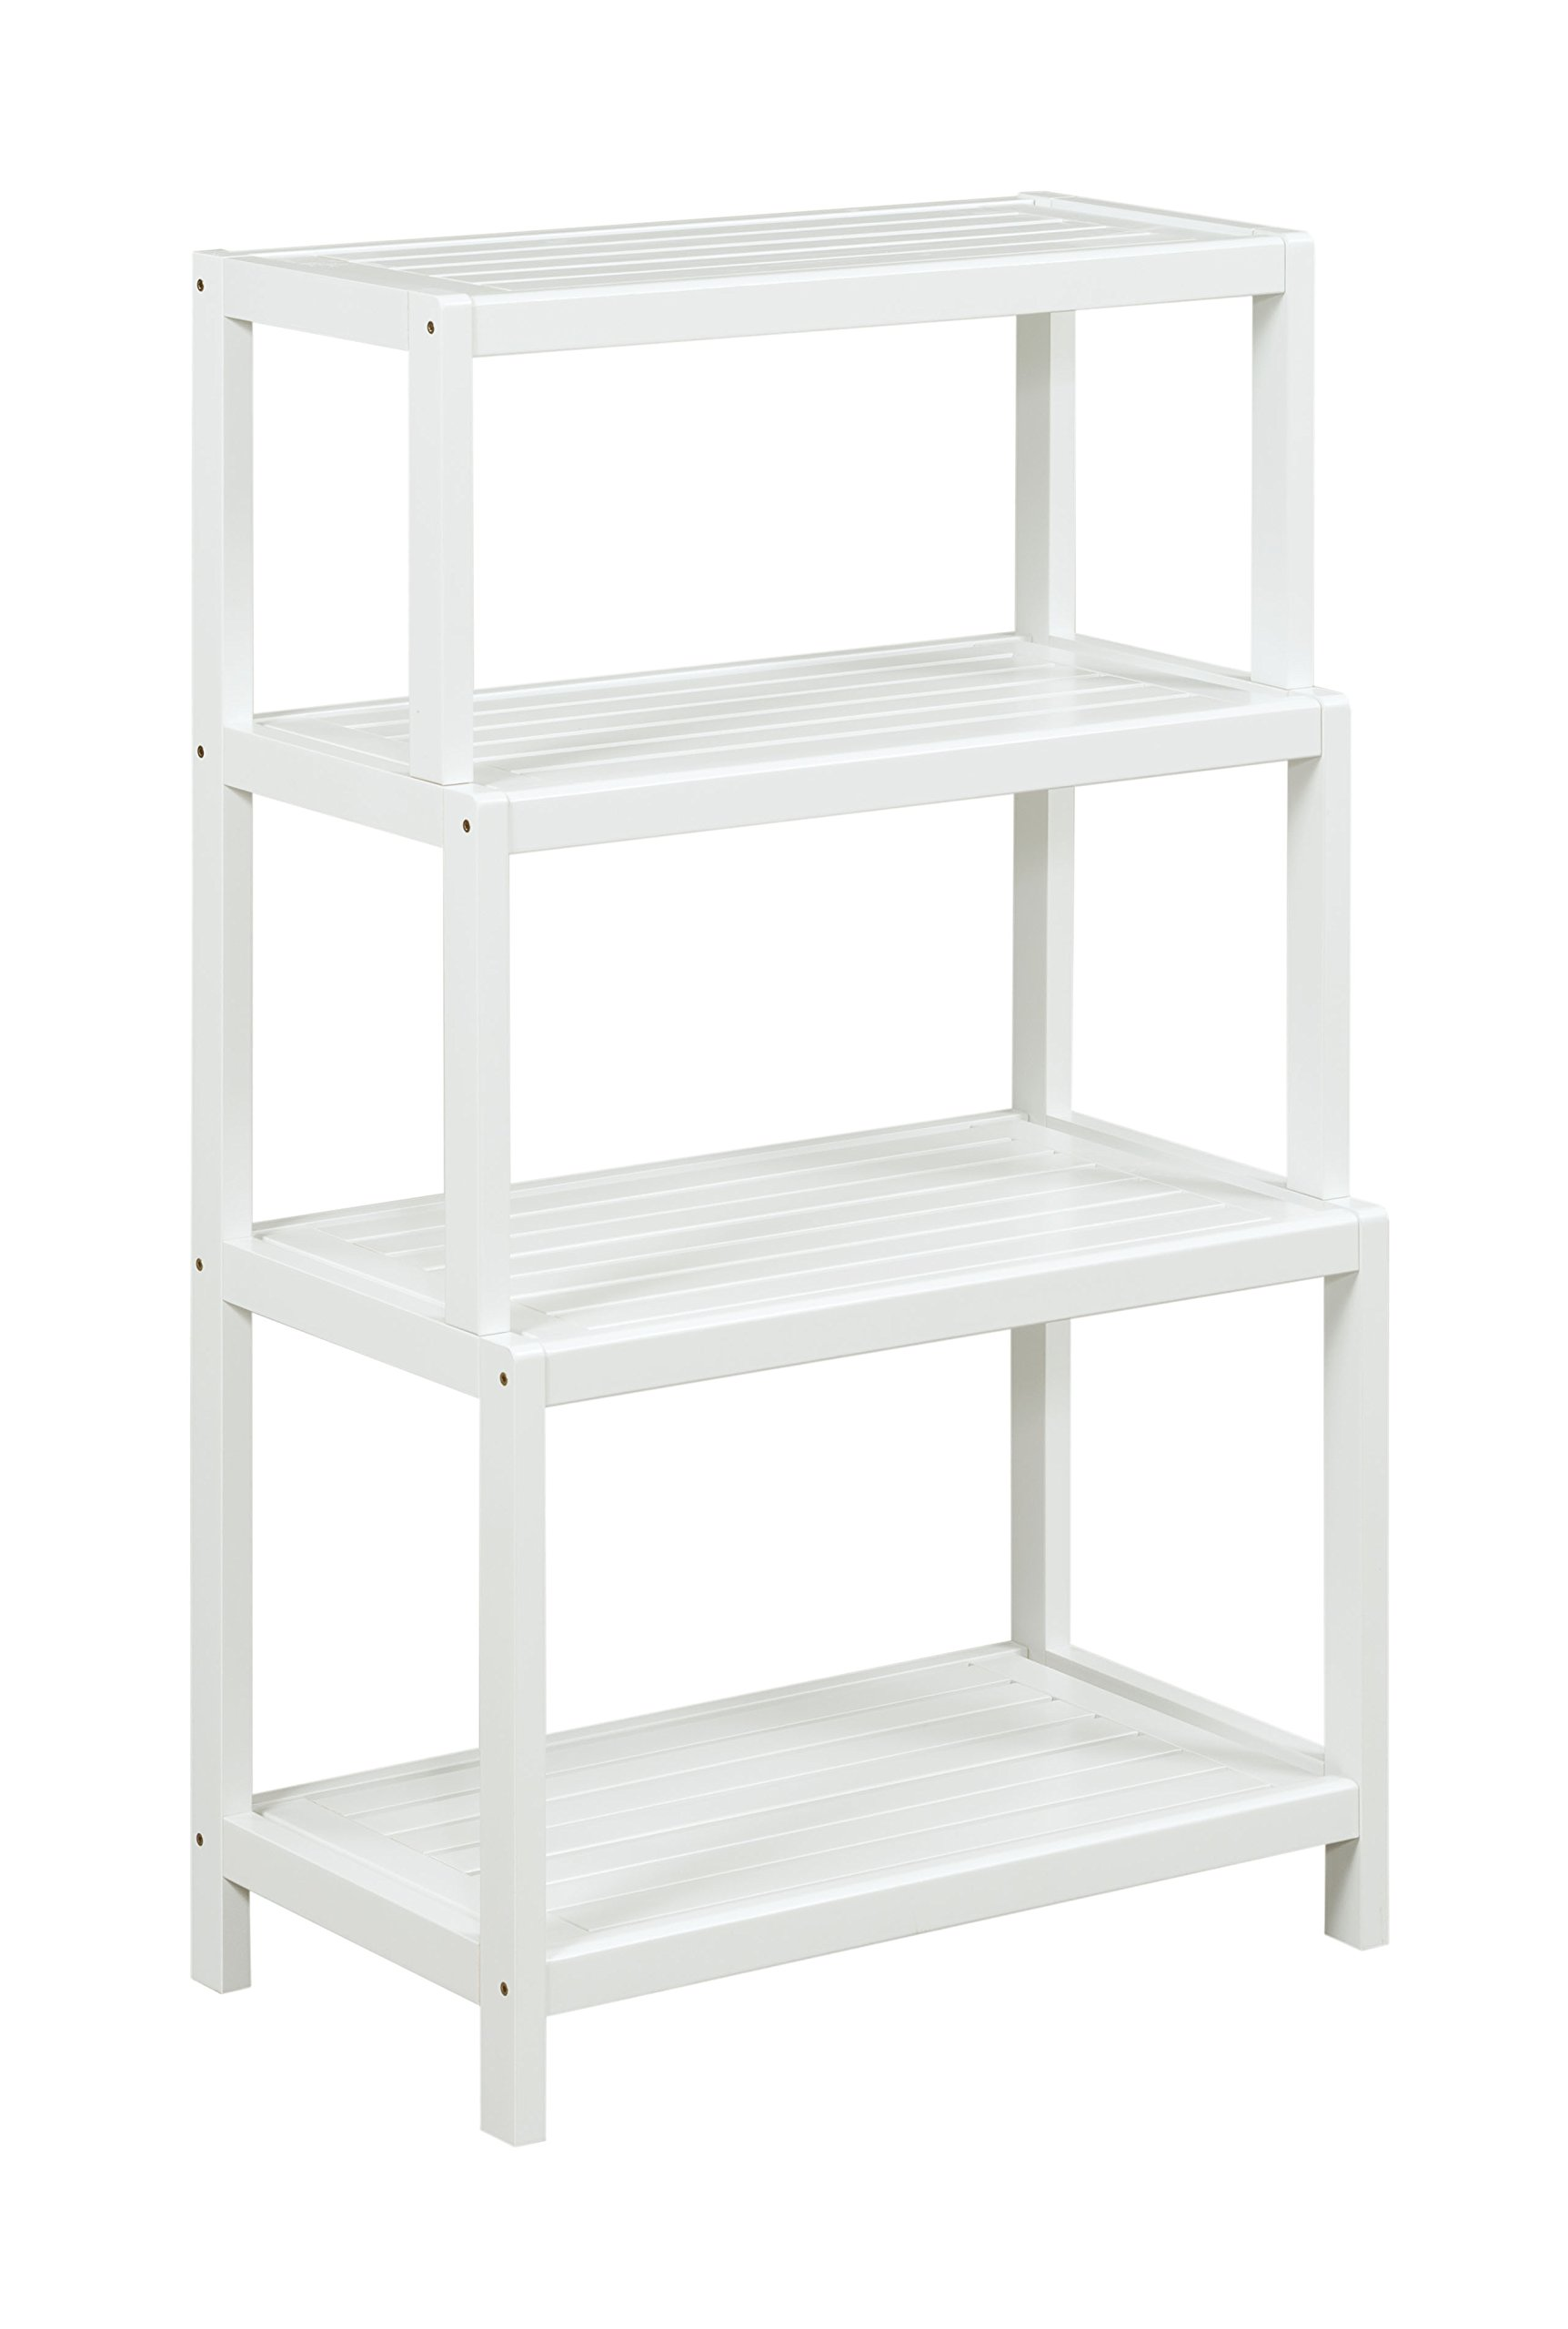 New Ridge 2022-WHT Bookcase Shelf, One Size, White